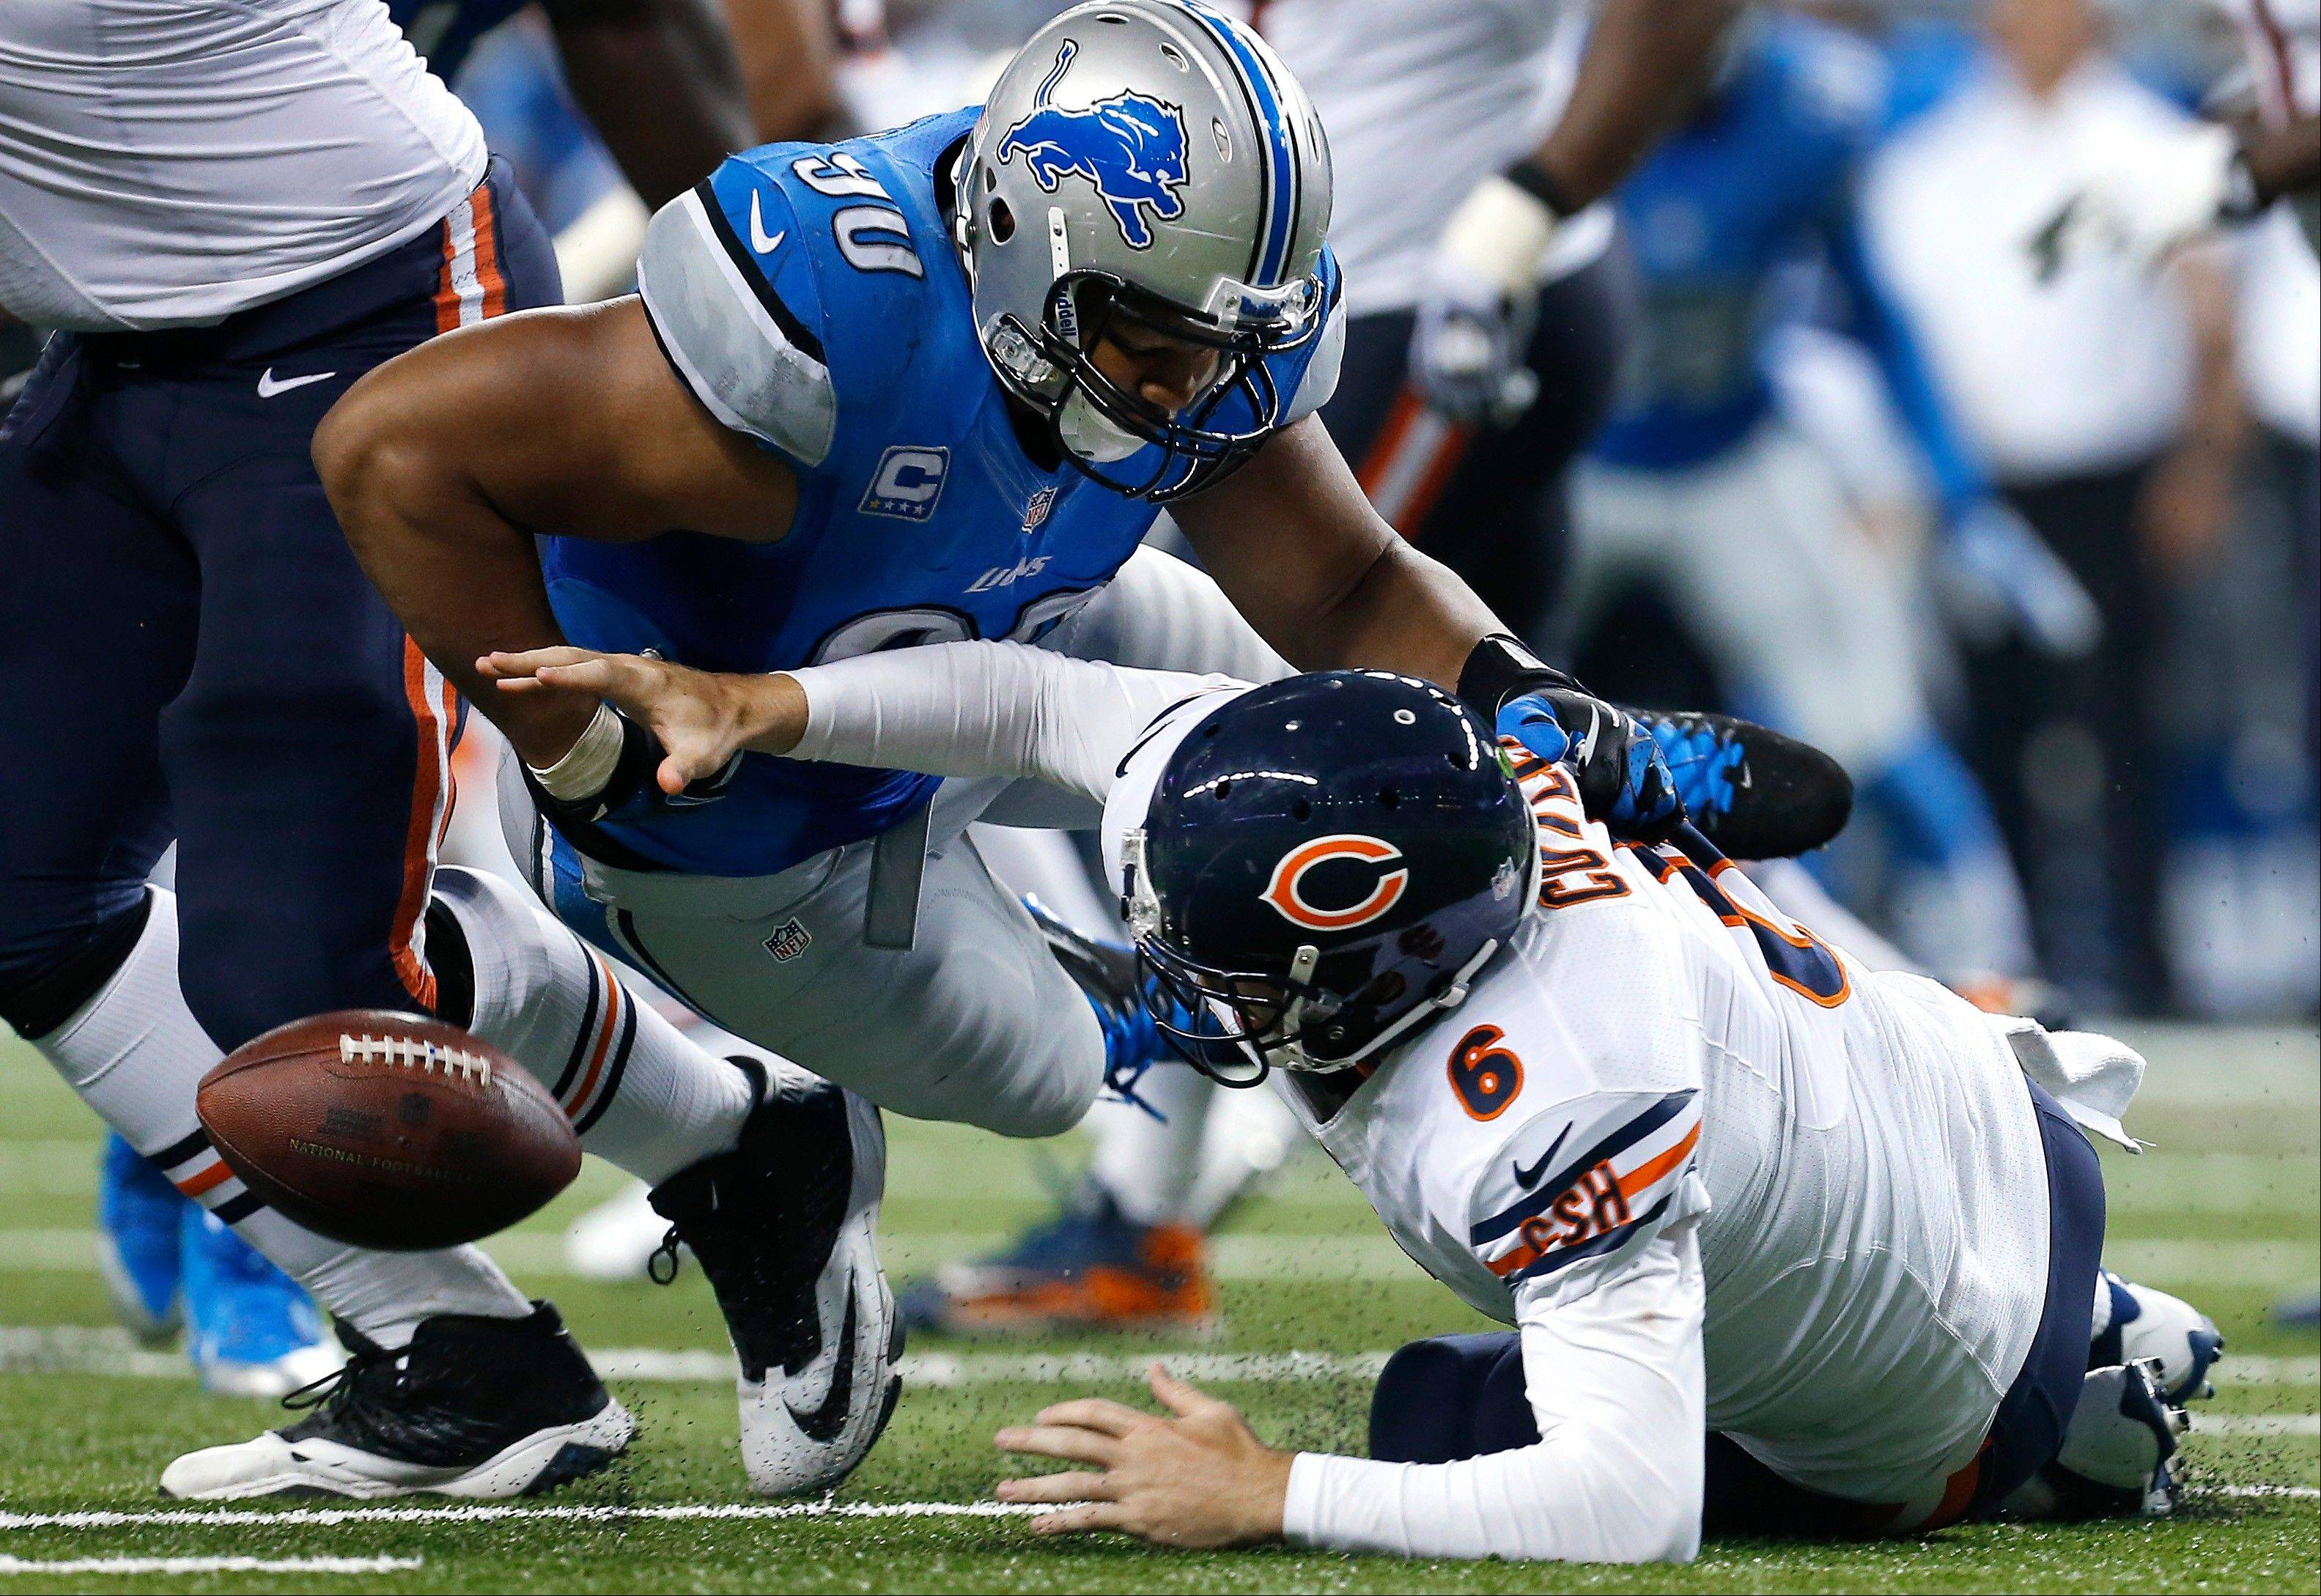 Bears quarterback Jay Cutler says it was hard to watch film of his last game against the Detroit Lions, when he lost a fumble and threw 3 interceptions. The Lions, who won that September game 40-32, visit Soldier Field on Sunday.